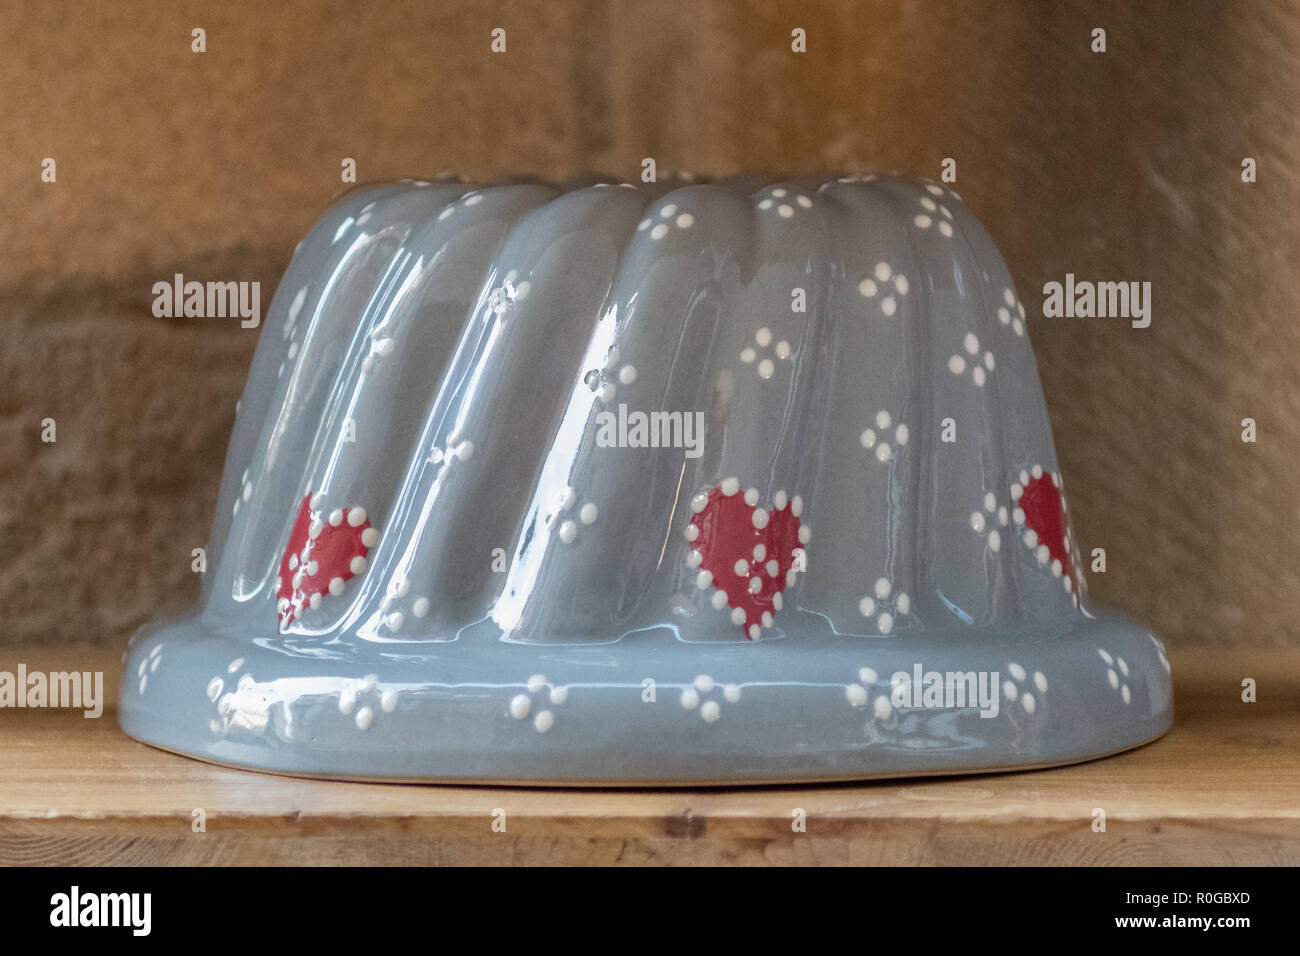 Traditional ceramic Kugelhopf bundt pan mold, Alsace, France - Stock Image